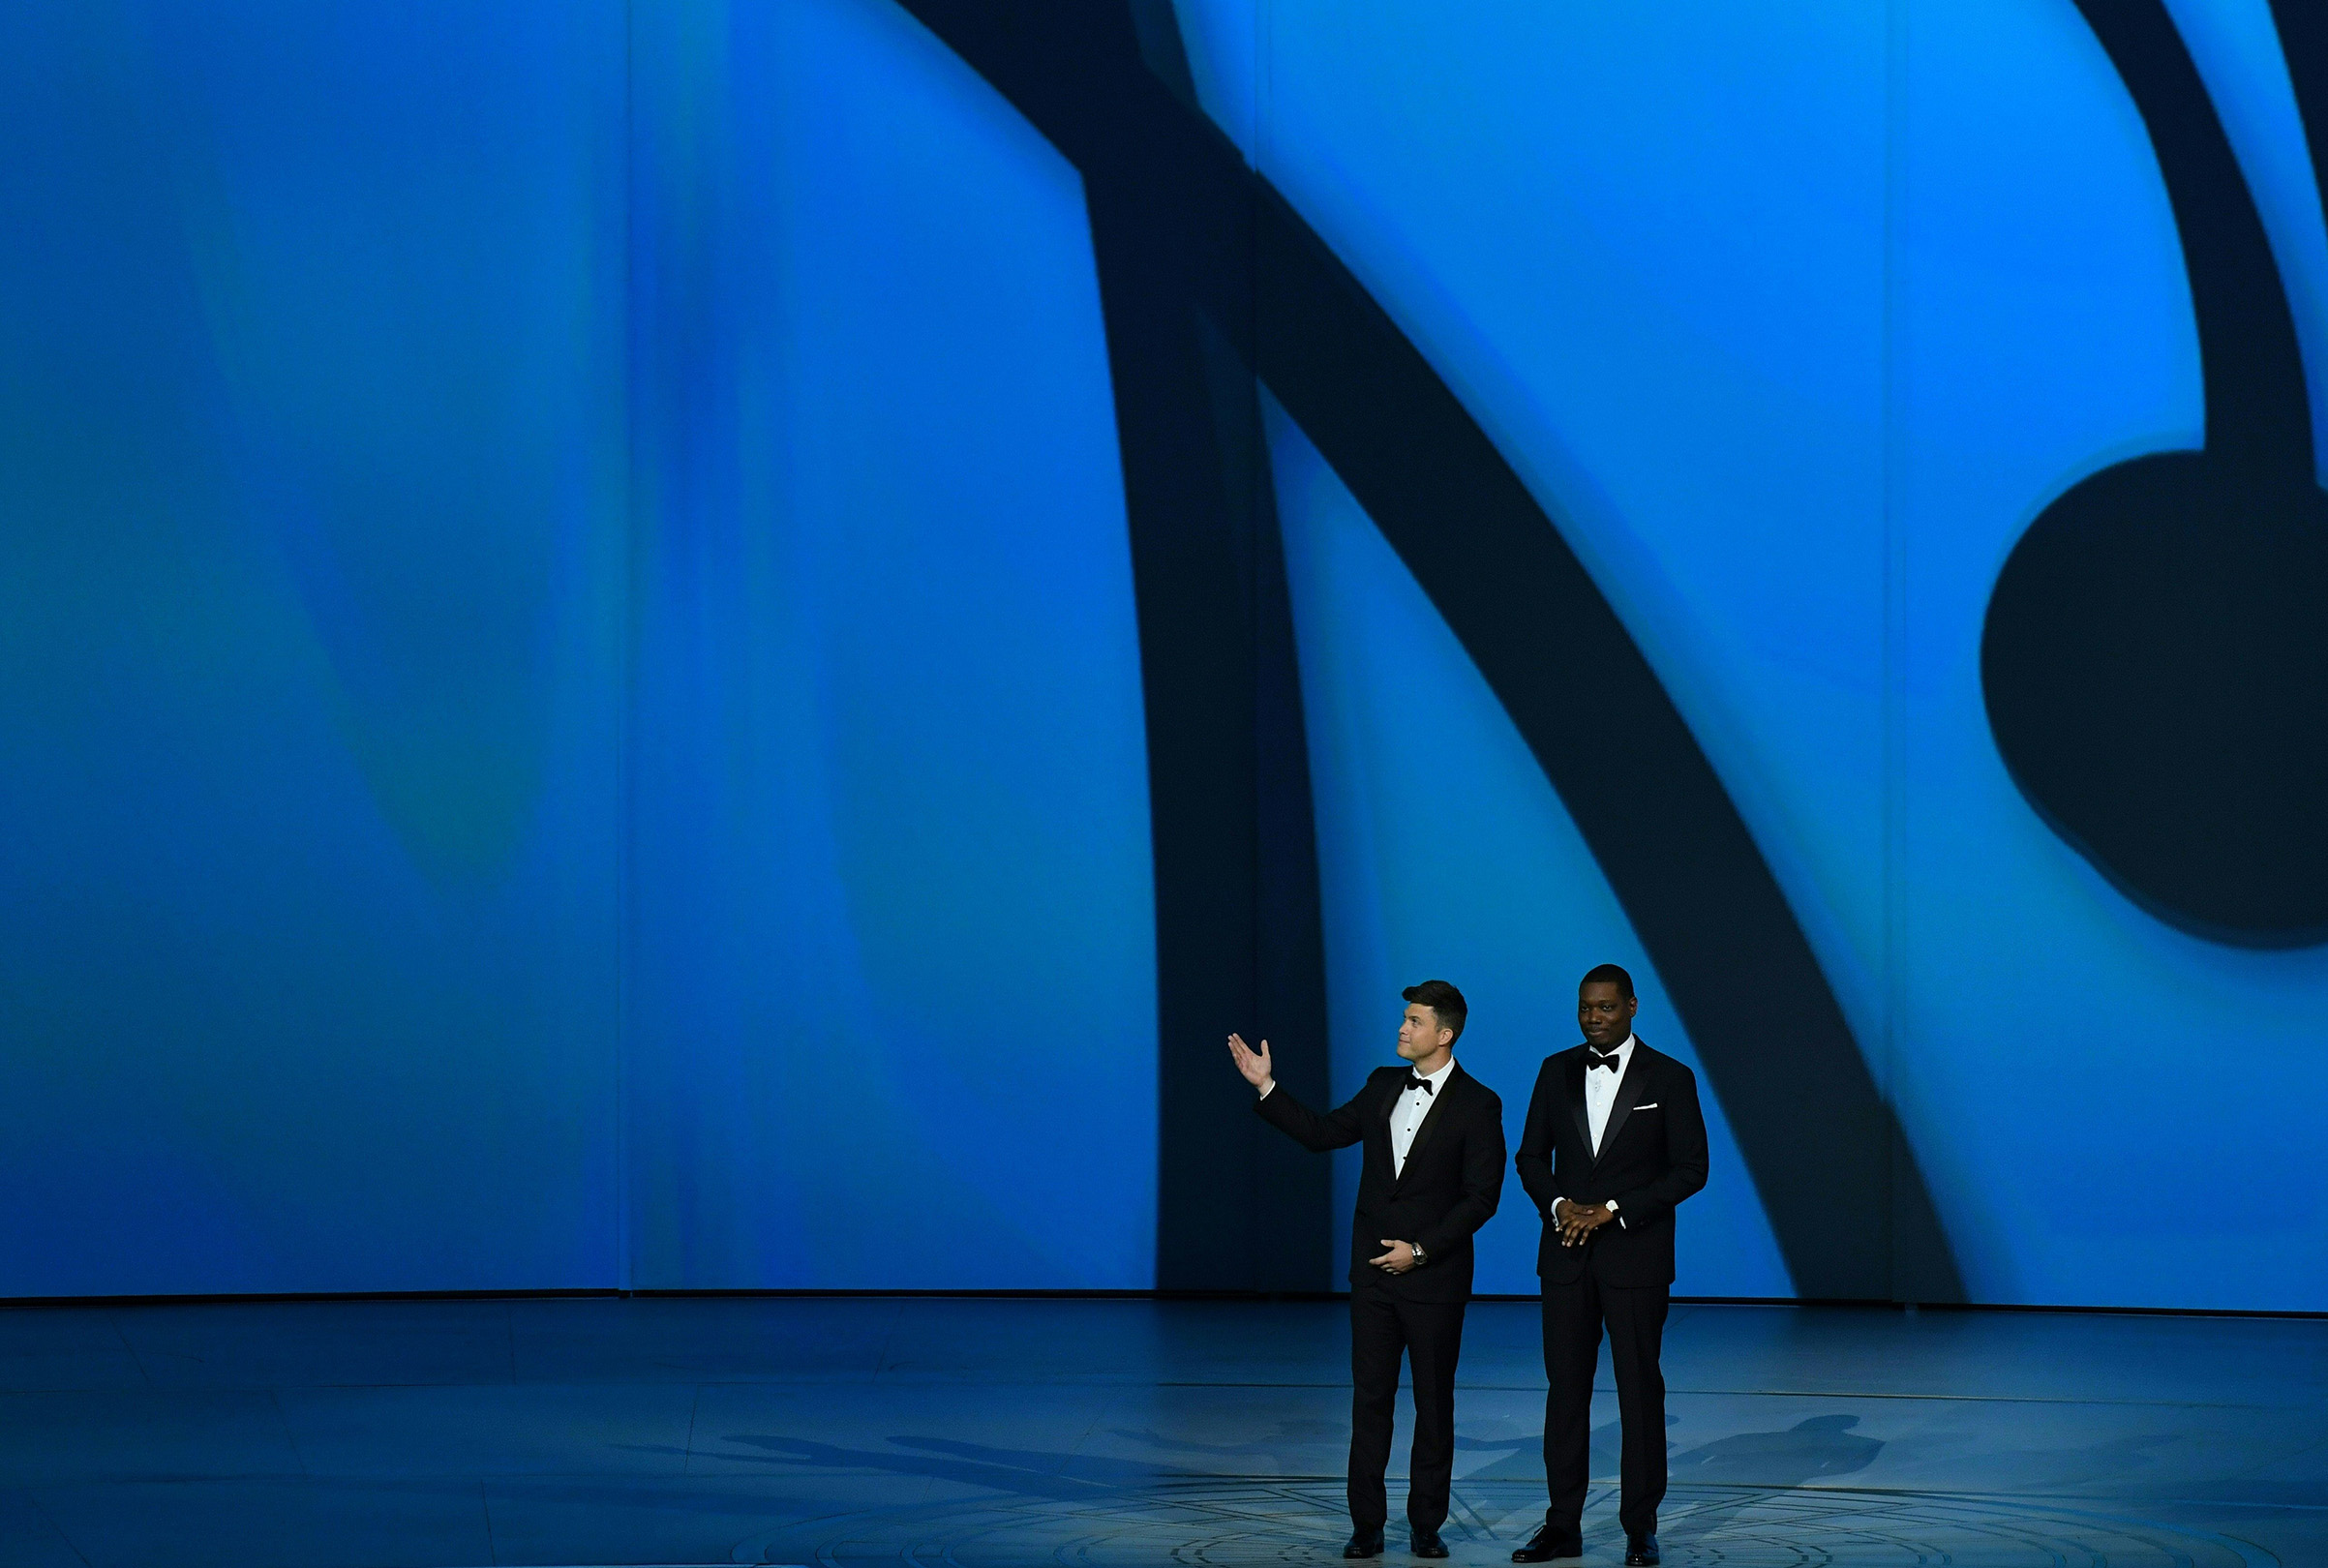 Hosts Colin Jost and Michael Che speak onstage during the 70th Emmy Awards at the Microsoft Theatre in Los Angeles on Sept. 17, 2018.